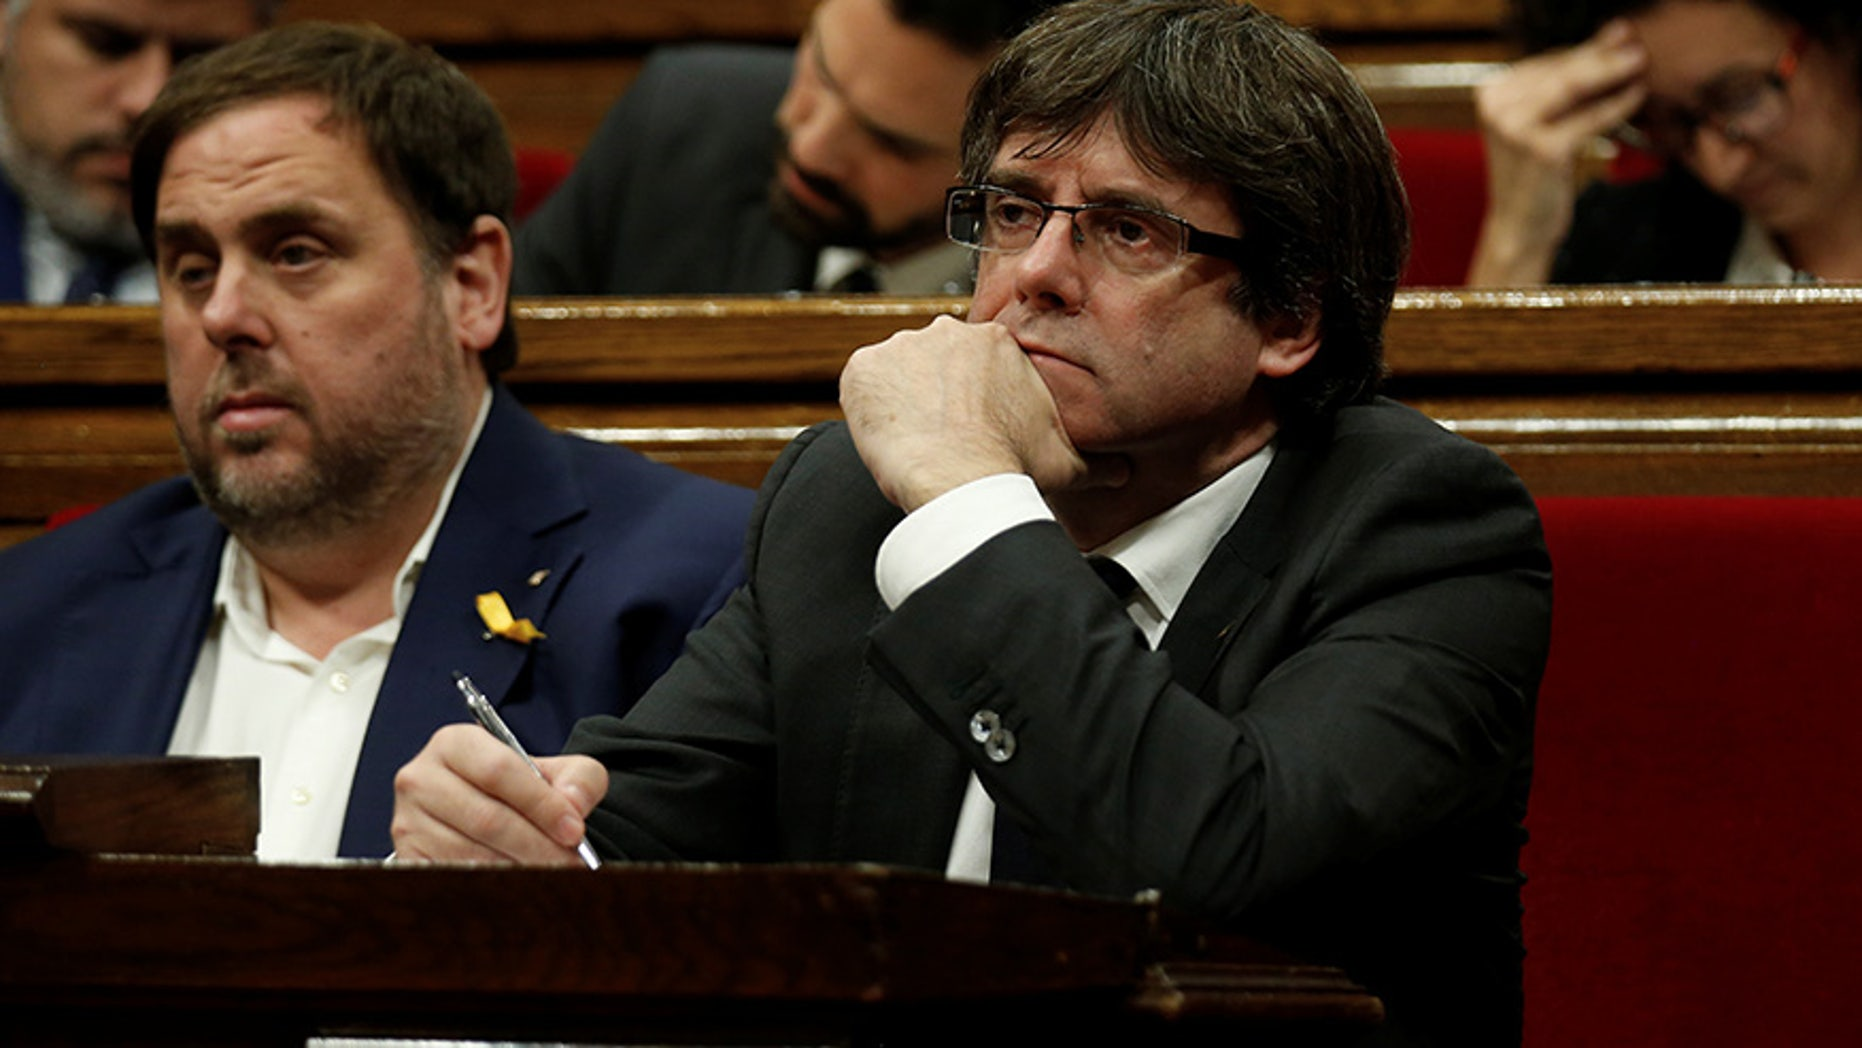 Catalan President Carles Puigdemont (R) and Vice President Oriol Junqueras attend a session at the Catalan regional Parliament in Barcelona, Spain, October 26, 2017. REUTERS/Albert Gea - RC1E8FE5B410